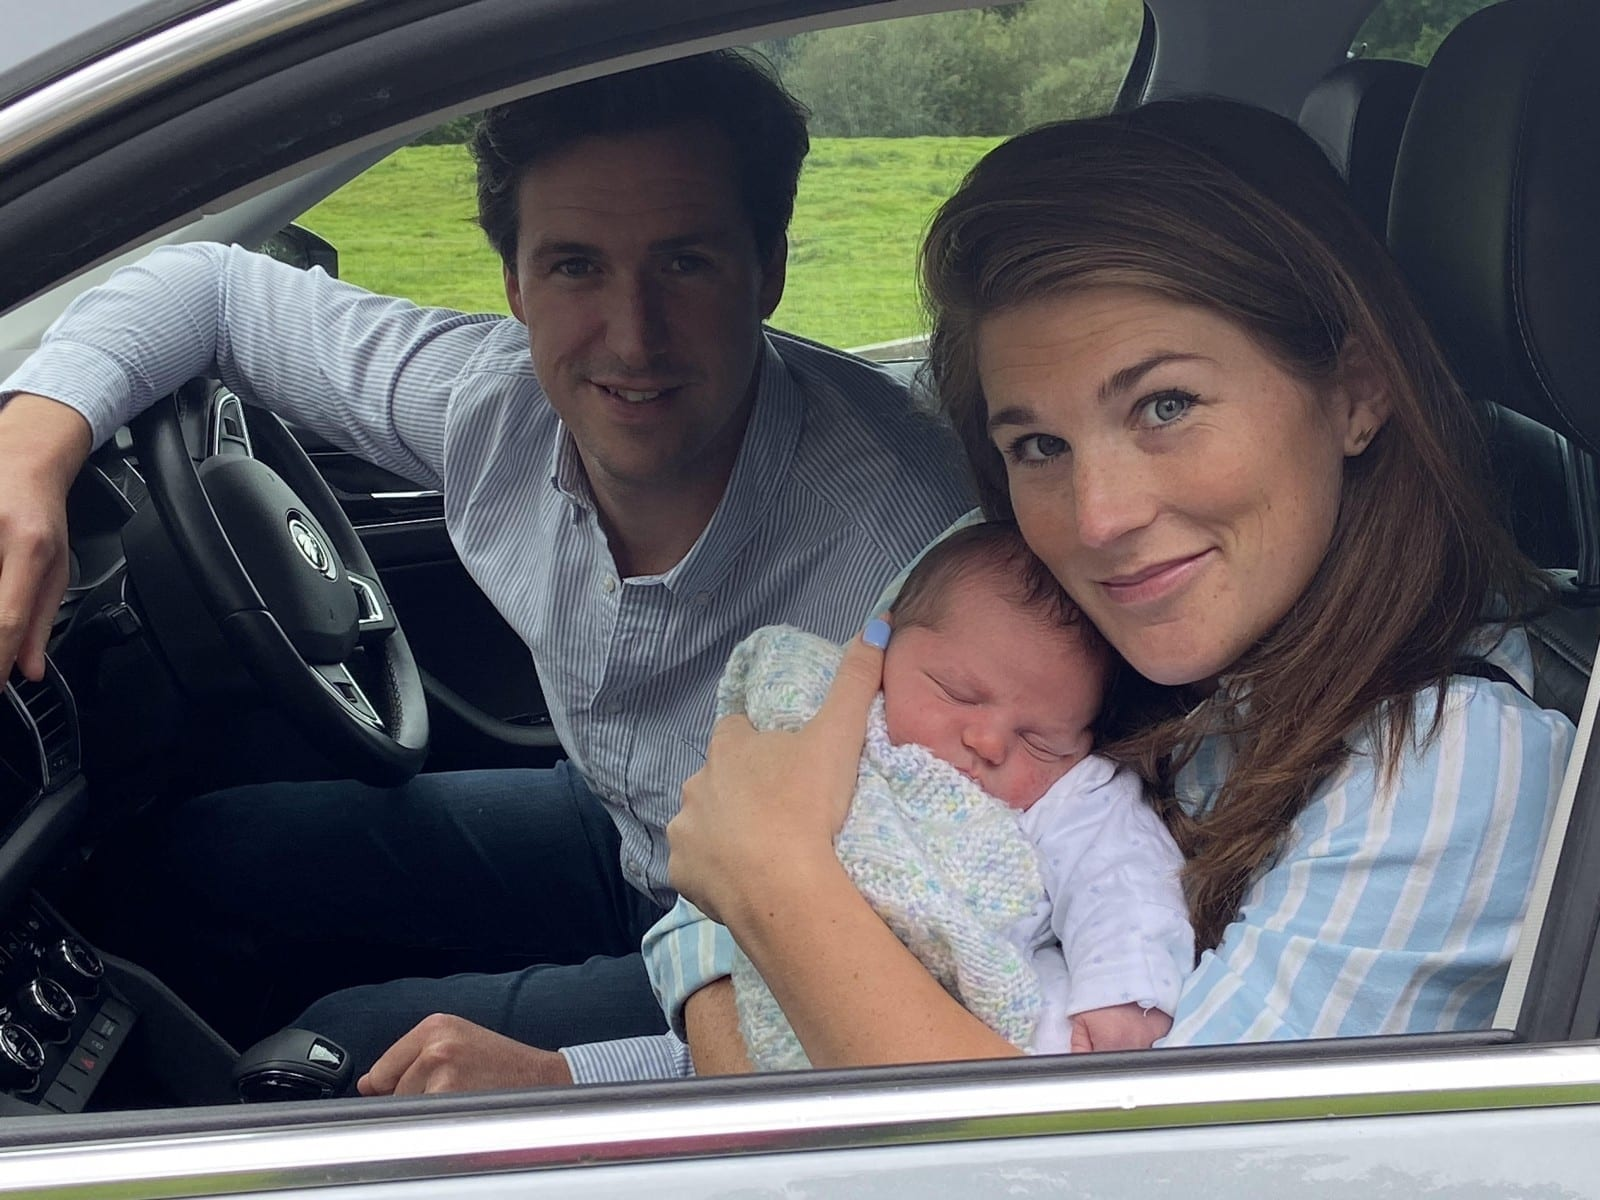 """A Dad Had To """"Catch"""" His Newborn Son While Driving As Wife Gave Birth On The Way To Hospital"""